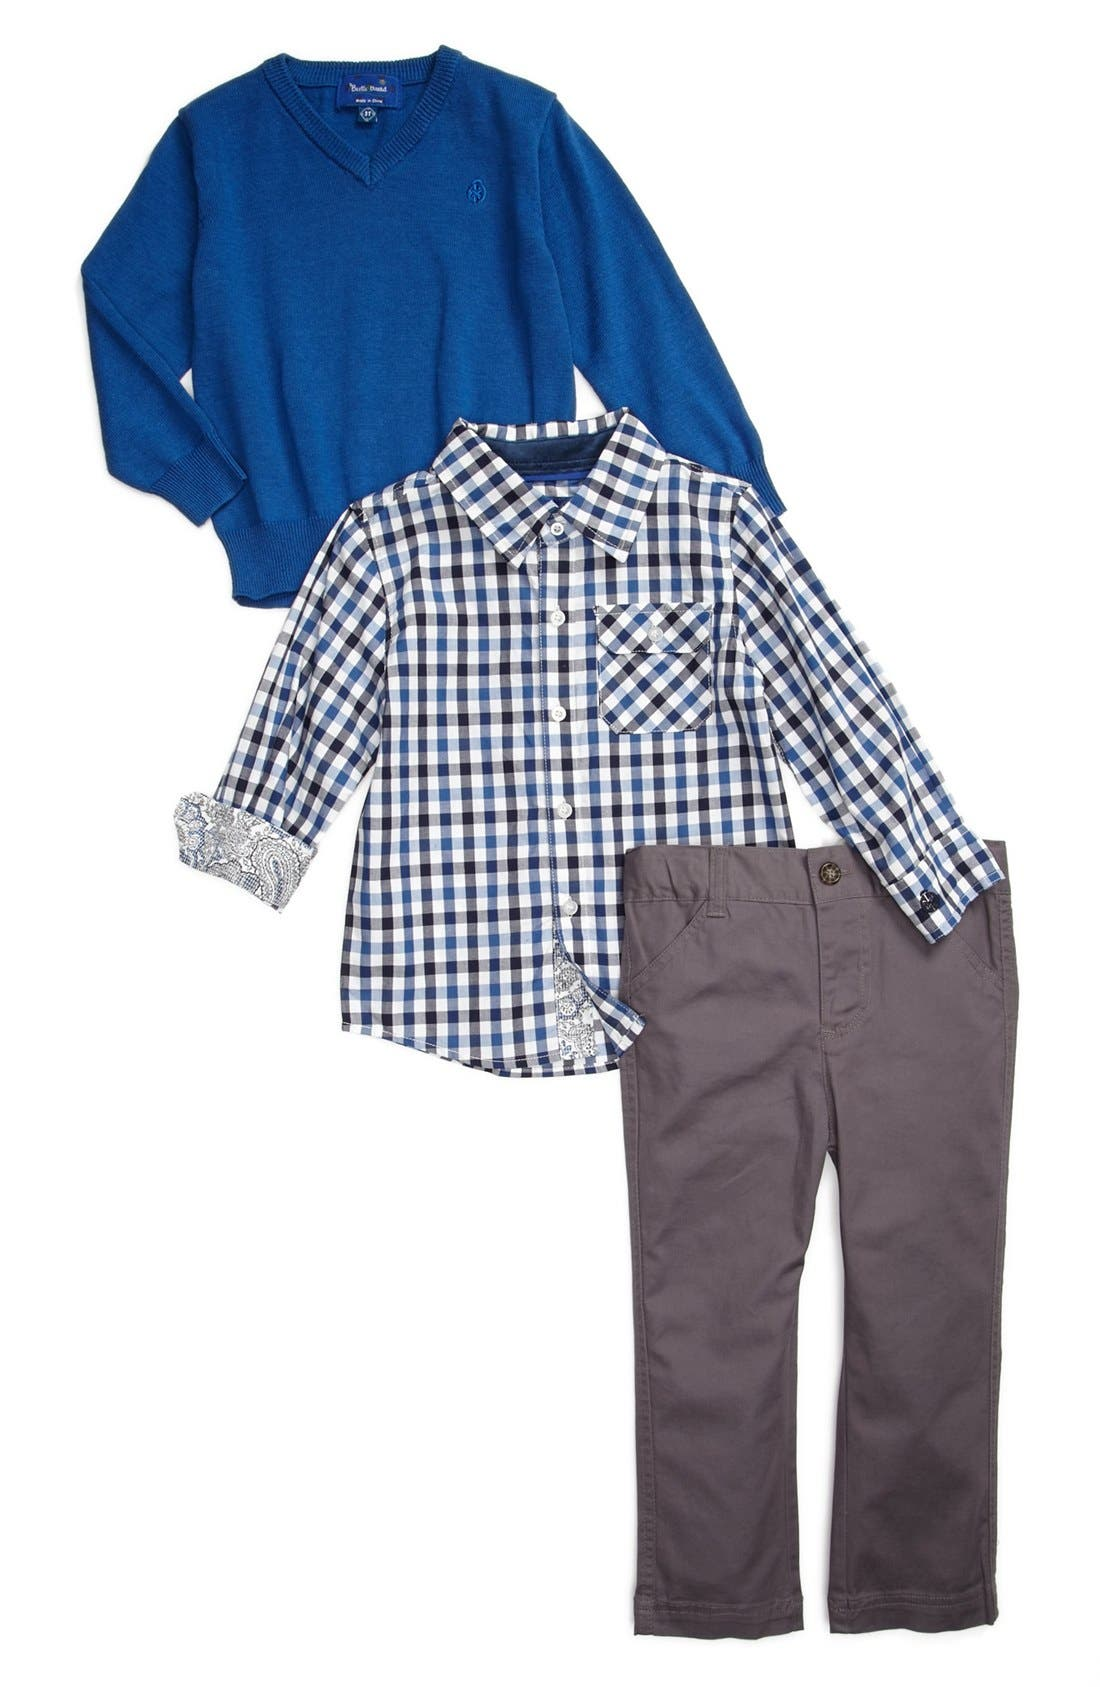 Alternate Image 1 Selected - Beetle & Thread Sweater, Sport Shirt & Pants (Toddler Boys)